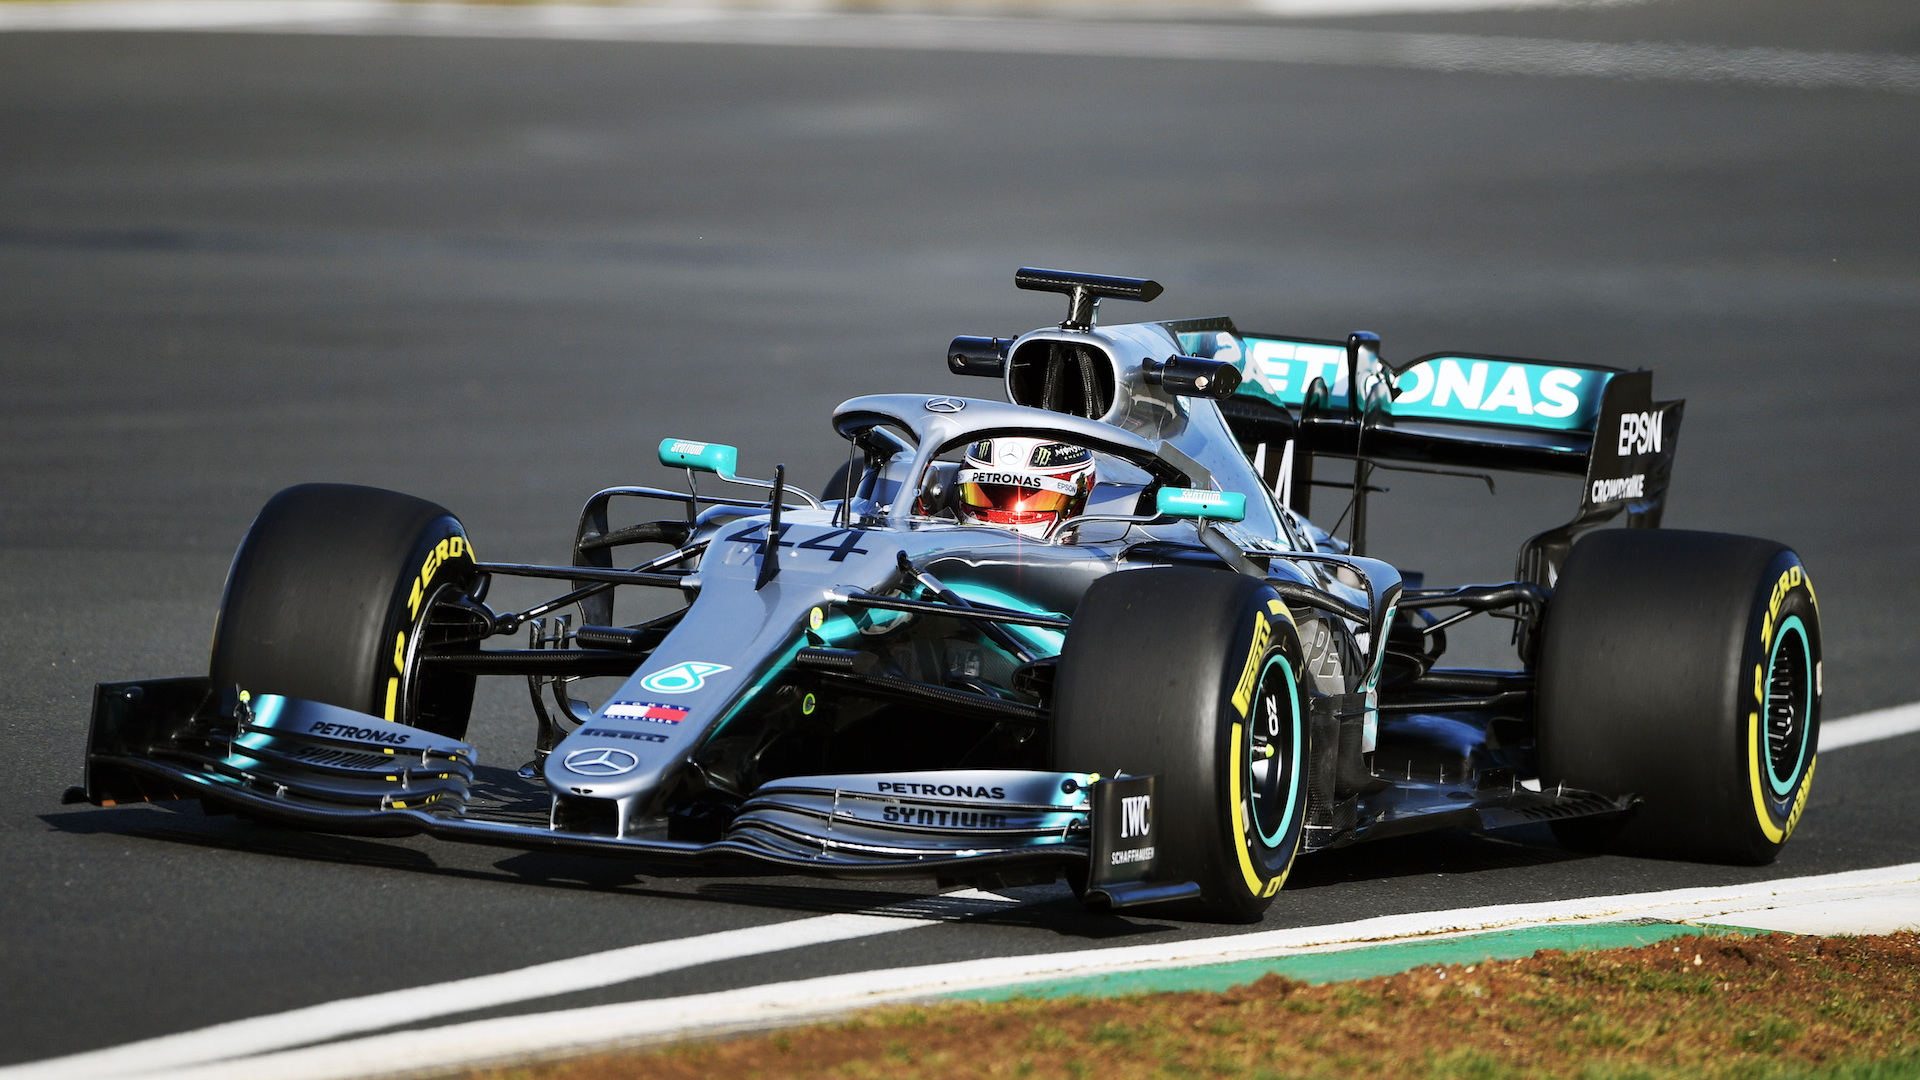 2019 Mercedes-AMG W10 Formula 1 race car